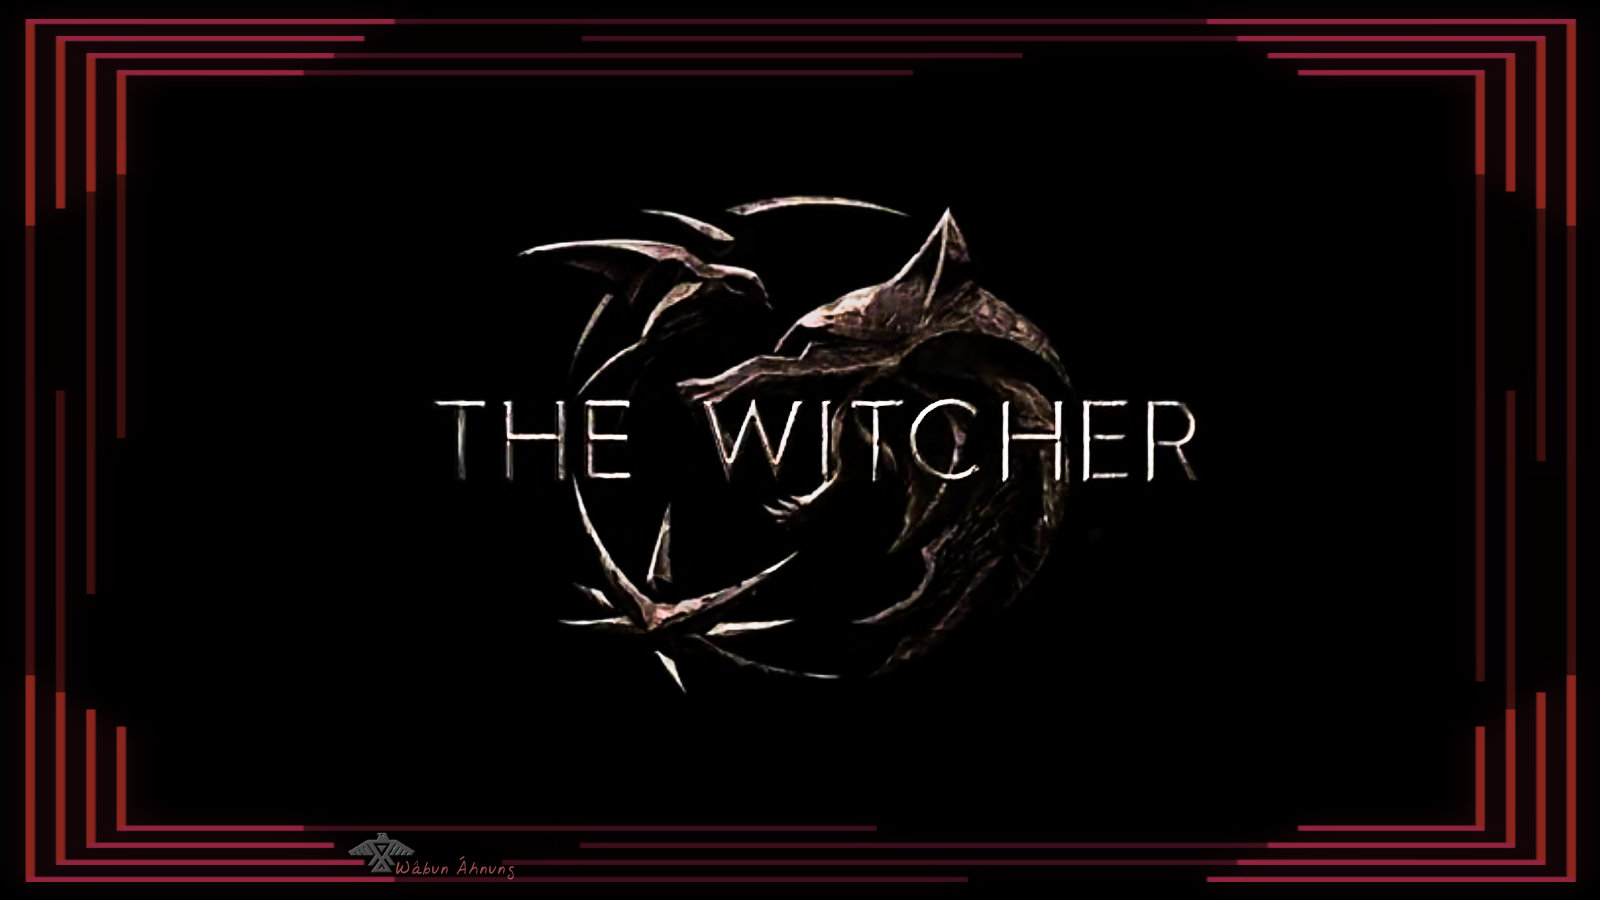 The Witcher 2019 The Witcher Netflix Wallpaper